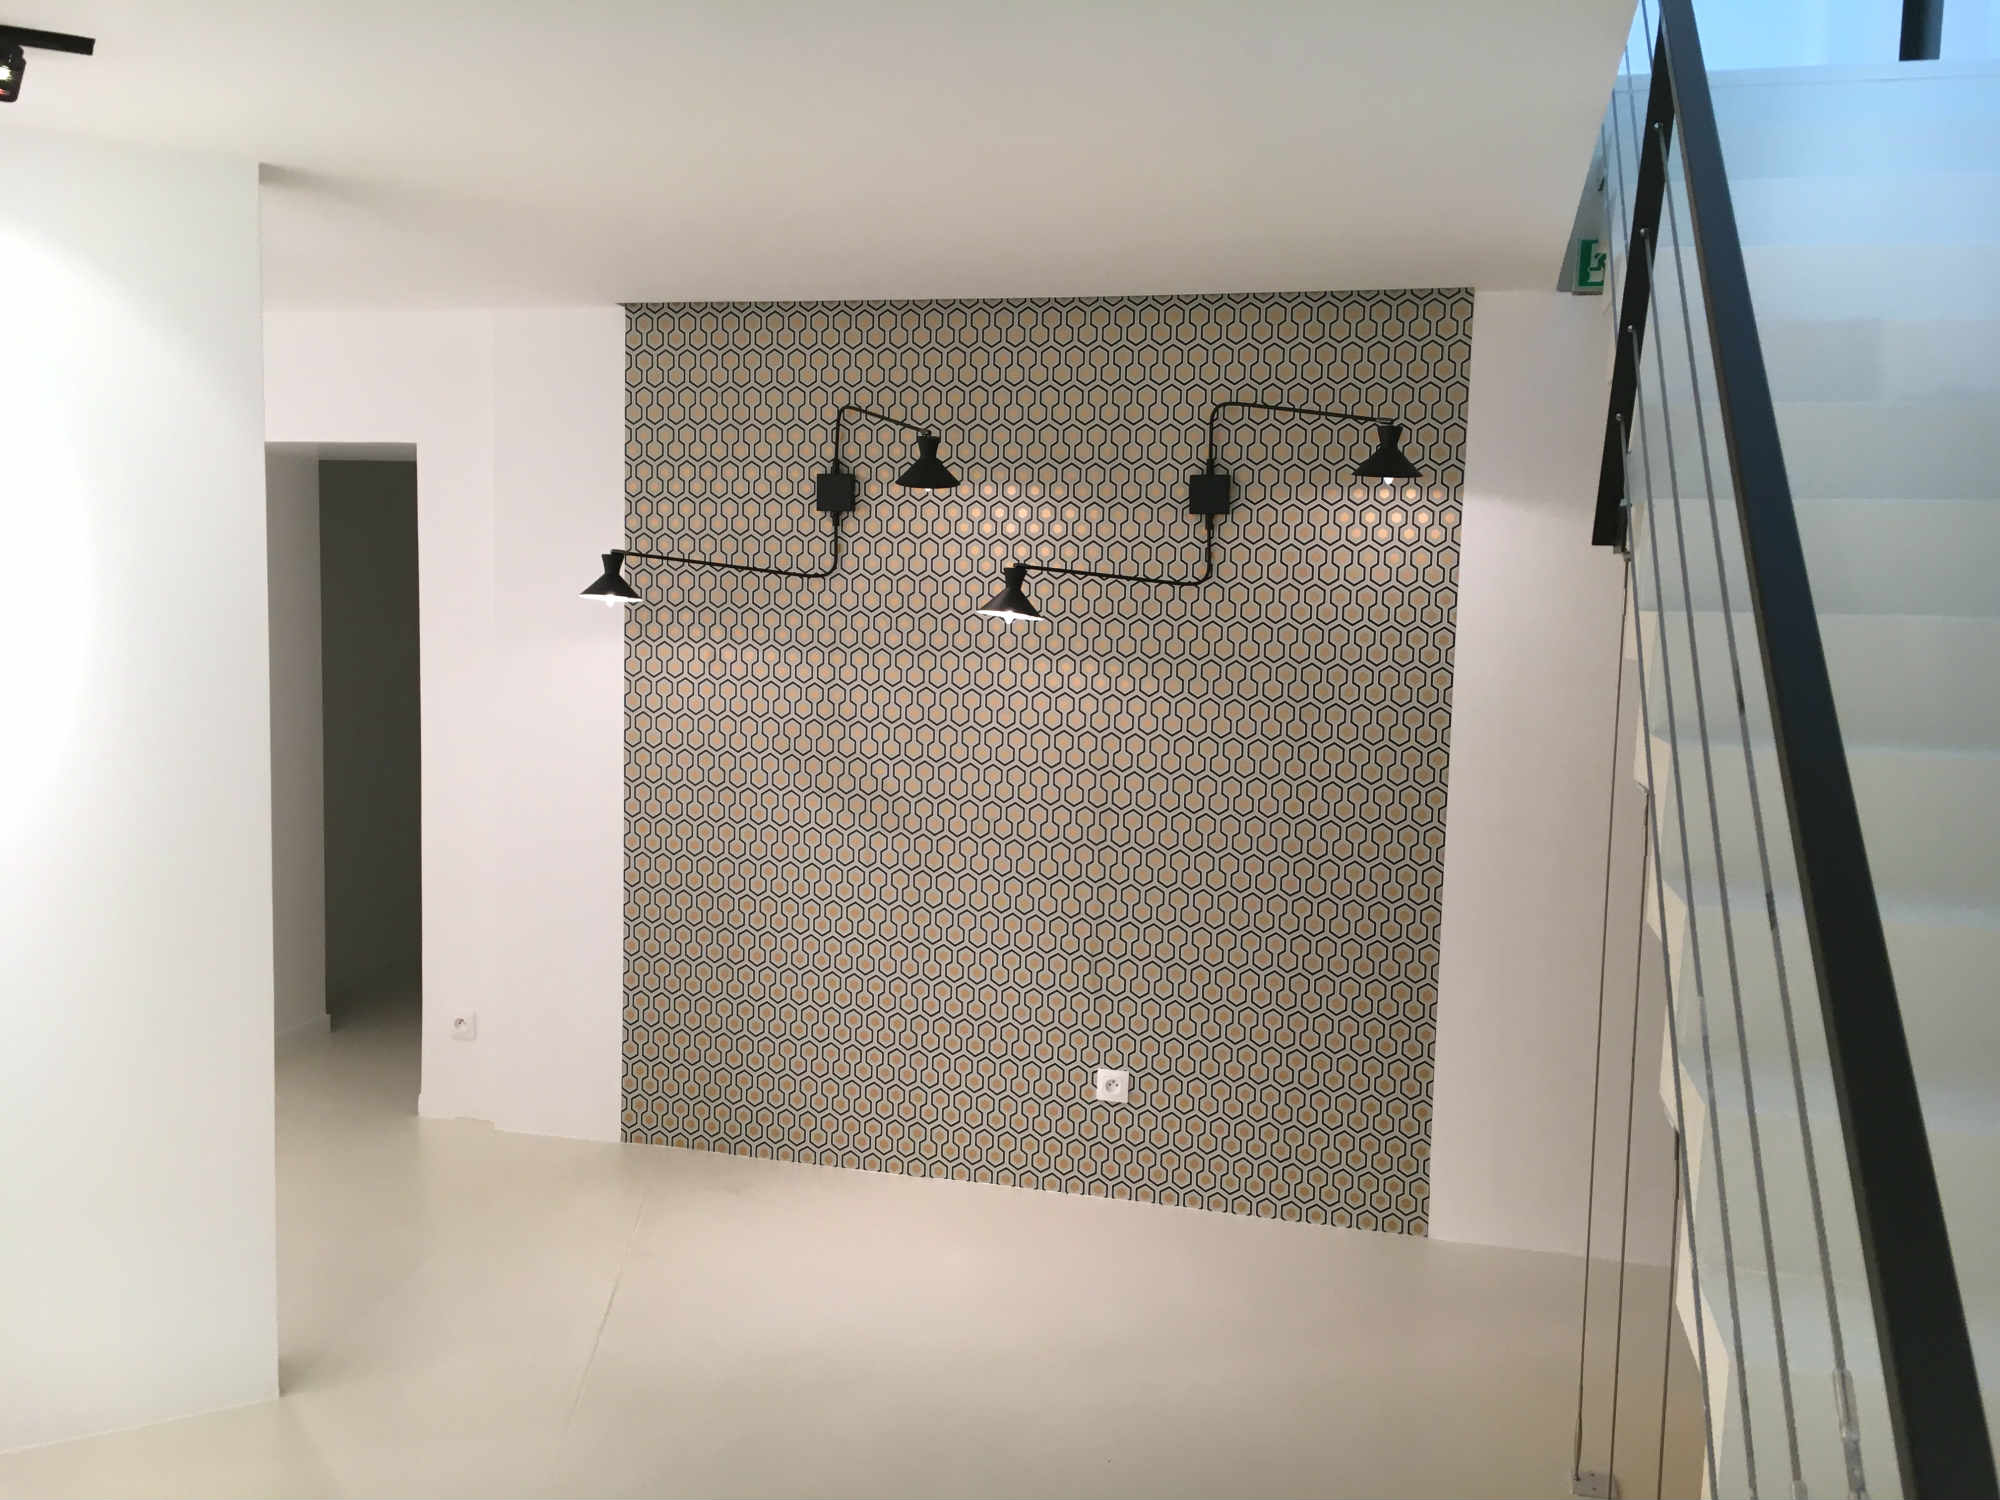 2017 travaux renovation showroom espace commercial Paris 7eme_Eolh btp france 4_BD